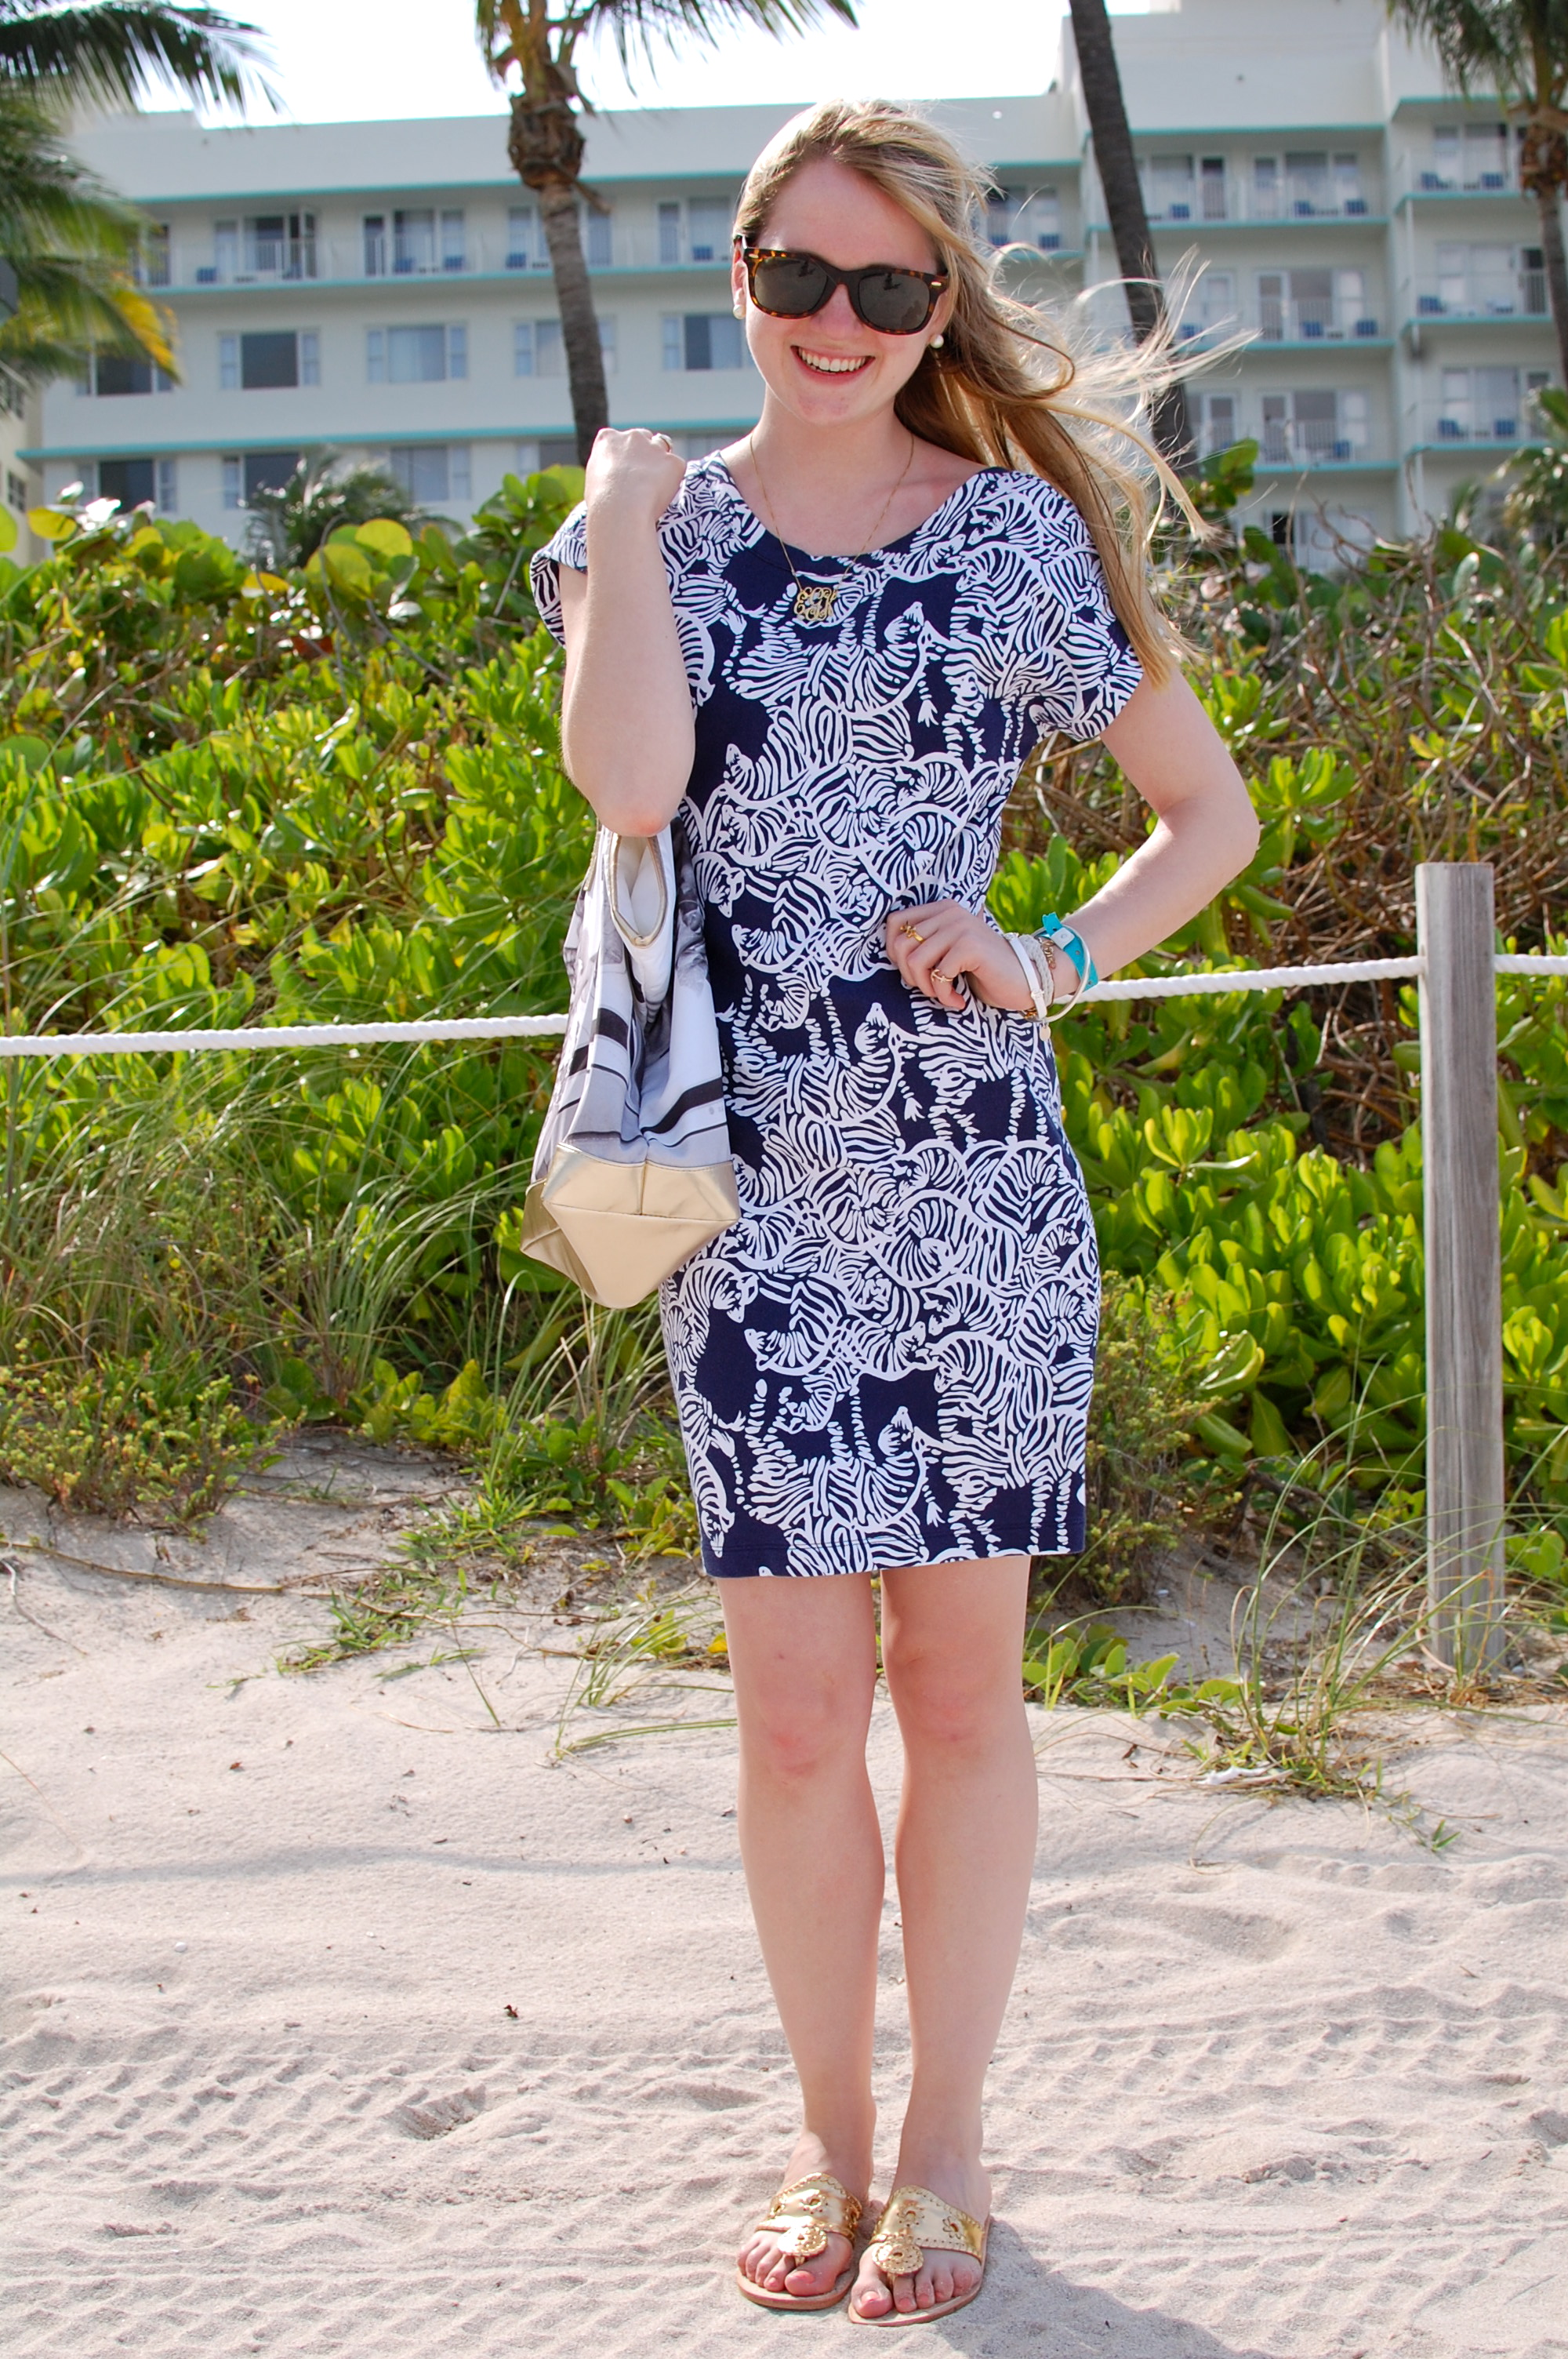 51e7433993e I never thought a city like Miami would be very much my style